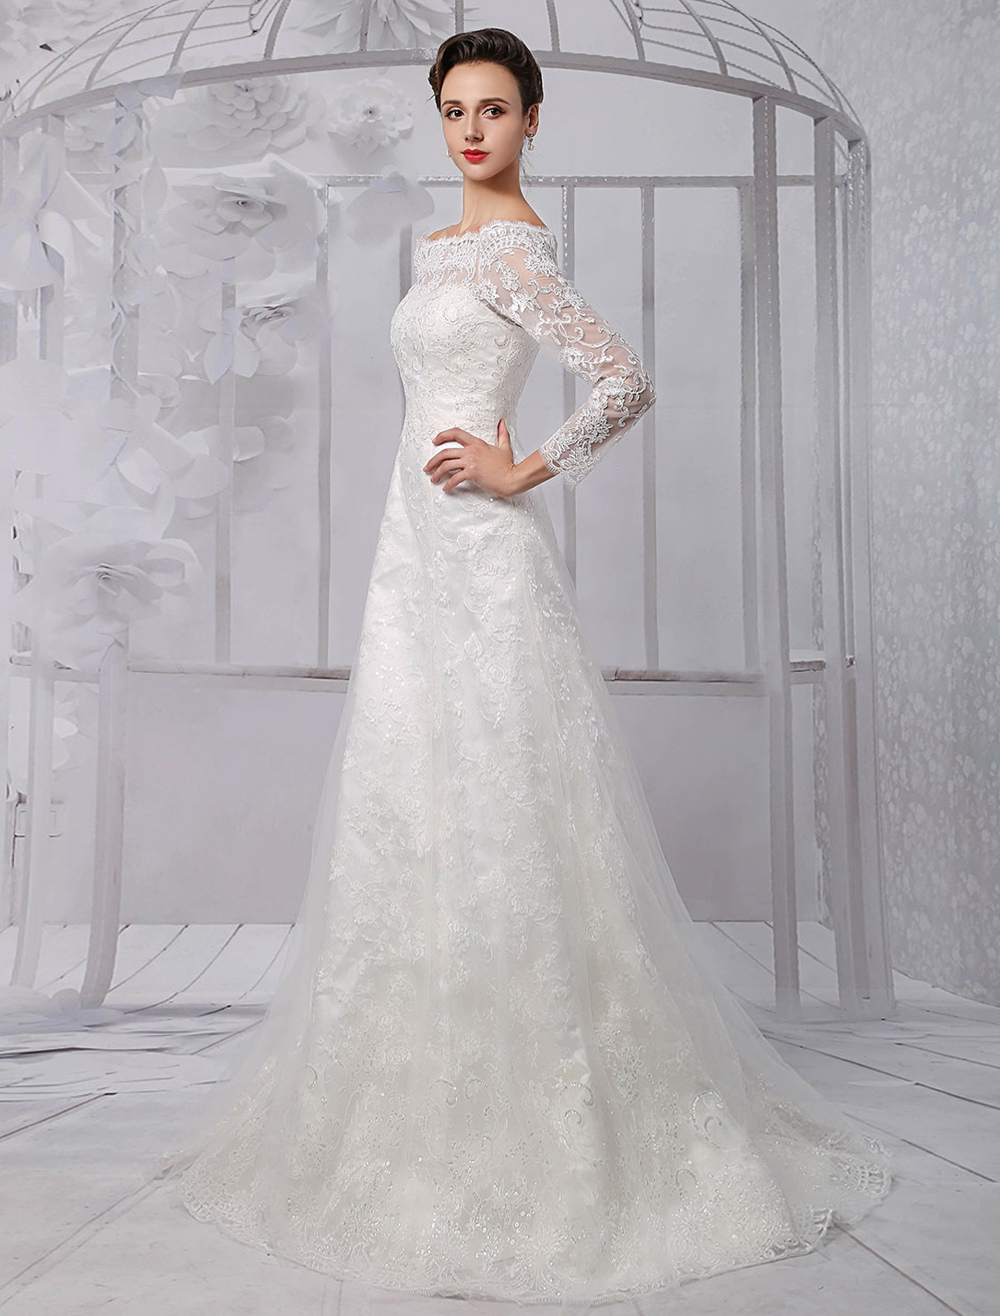 Lace Long Sleeve Off The Shoulder A-line Wedding Gown Milanoo